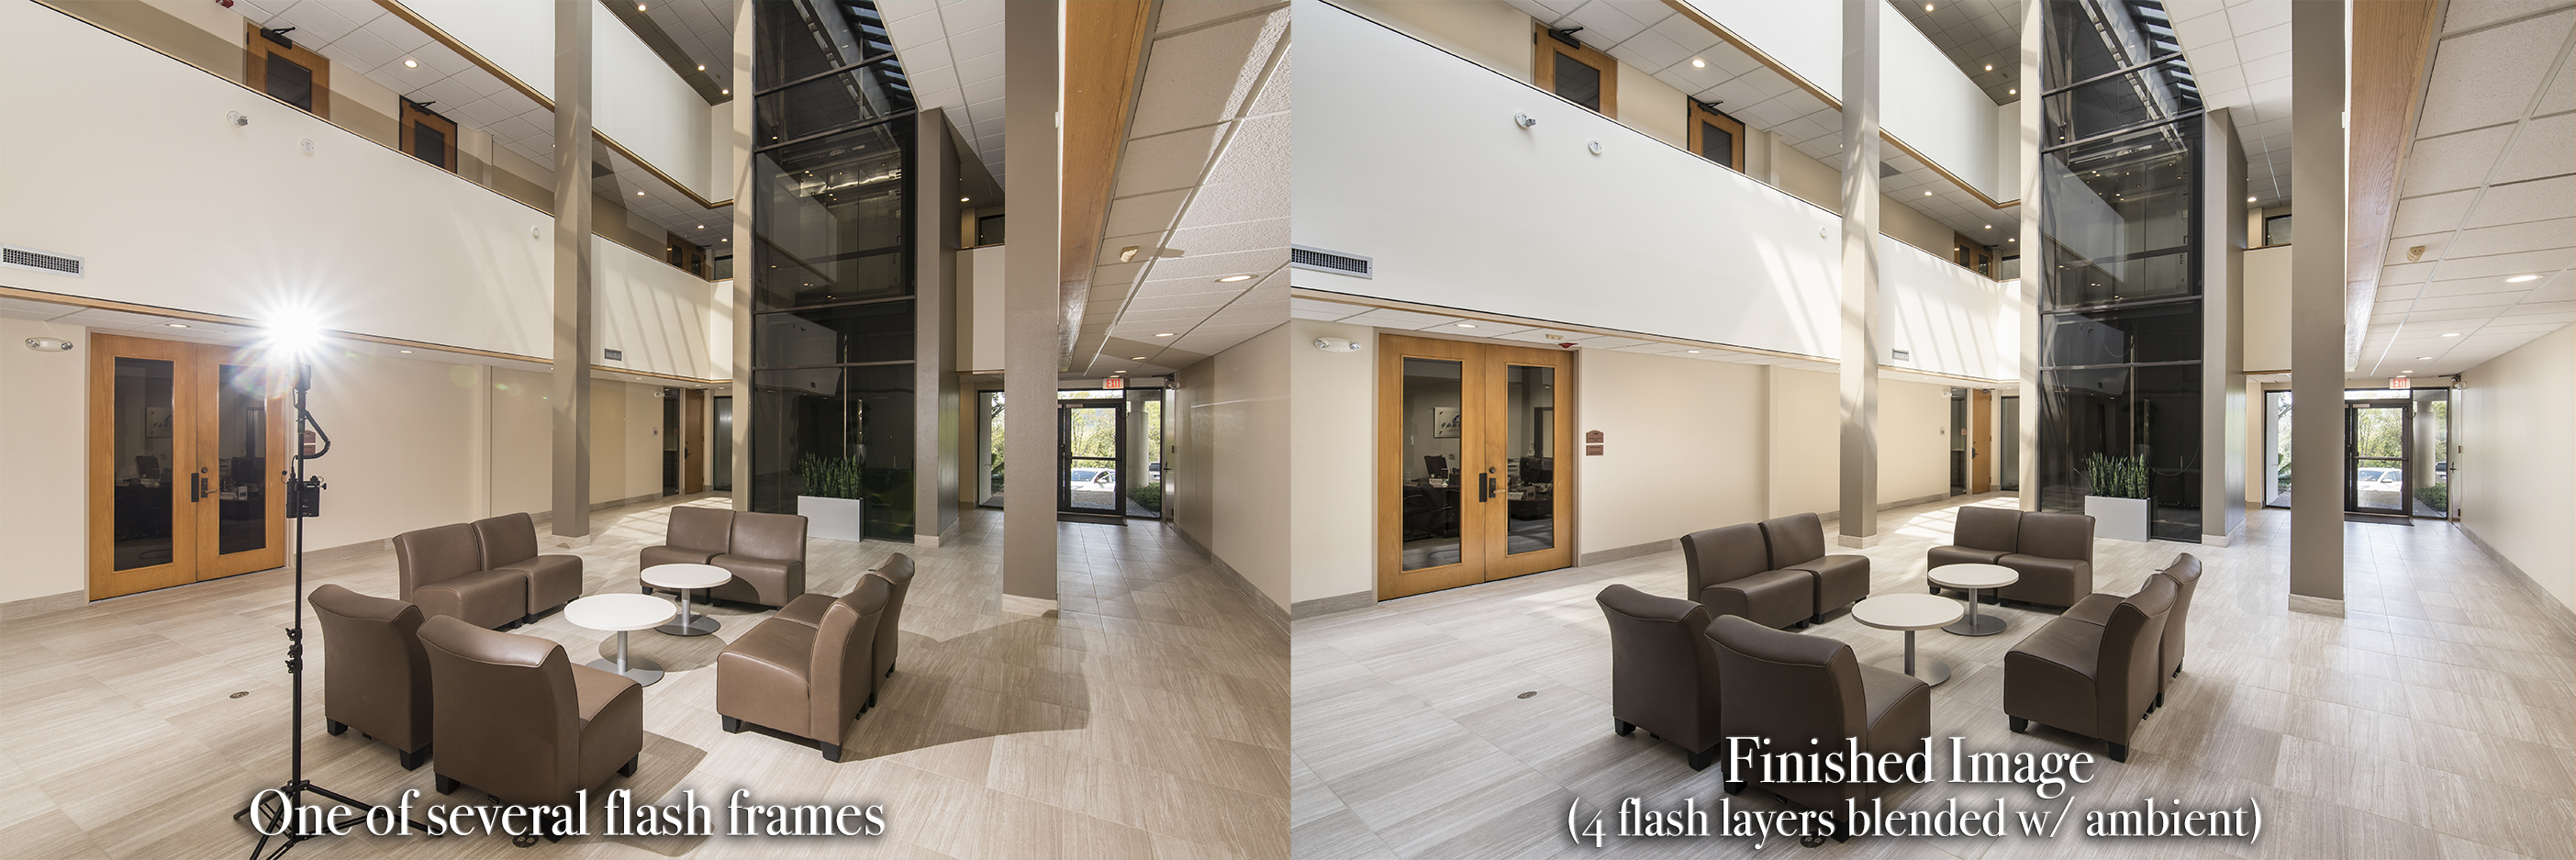 a diptych showing the process of using a Streaklight 360 flash to photograph a commercial interior